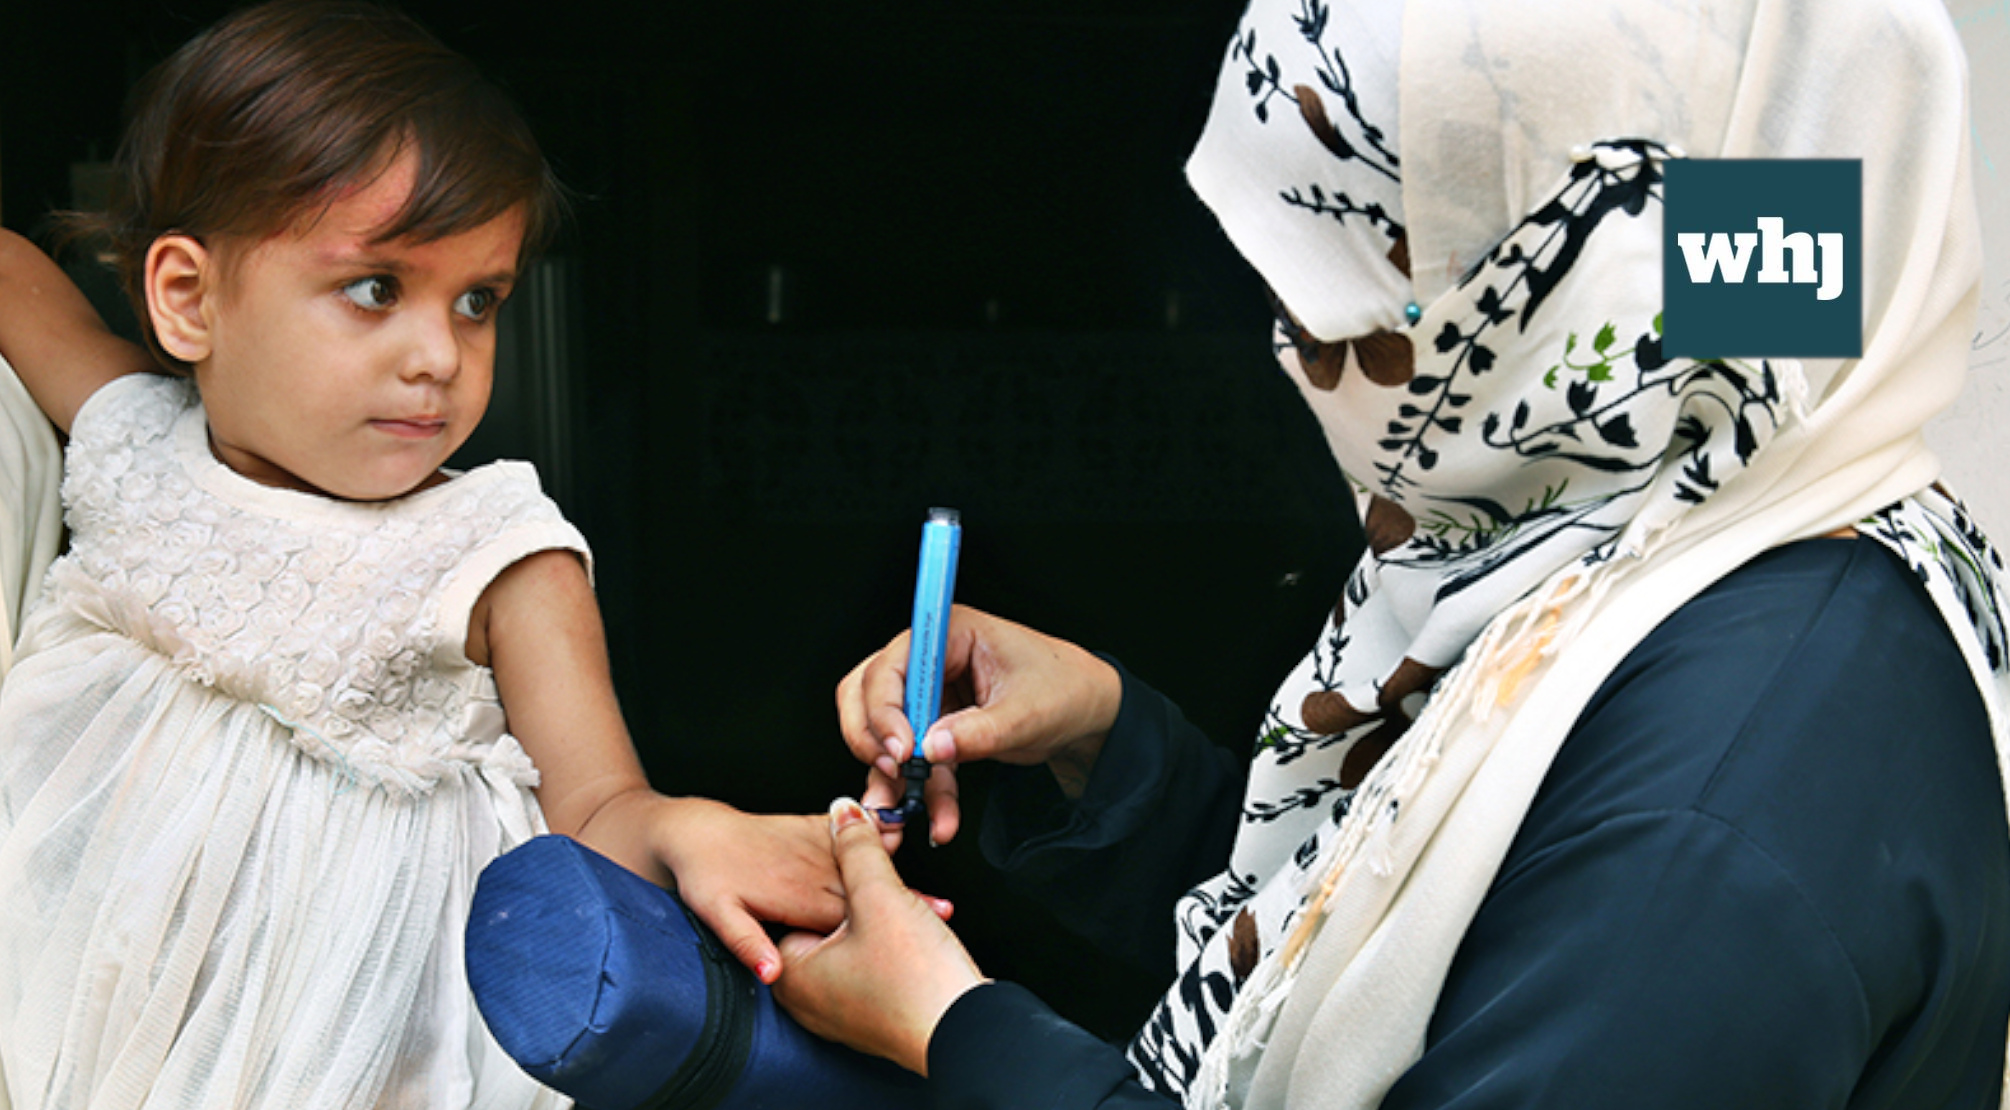 Pakistan is fighting to combat polio while Covid-19 looms over the world